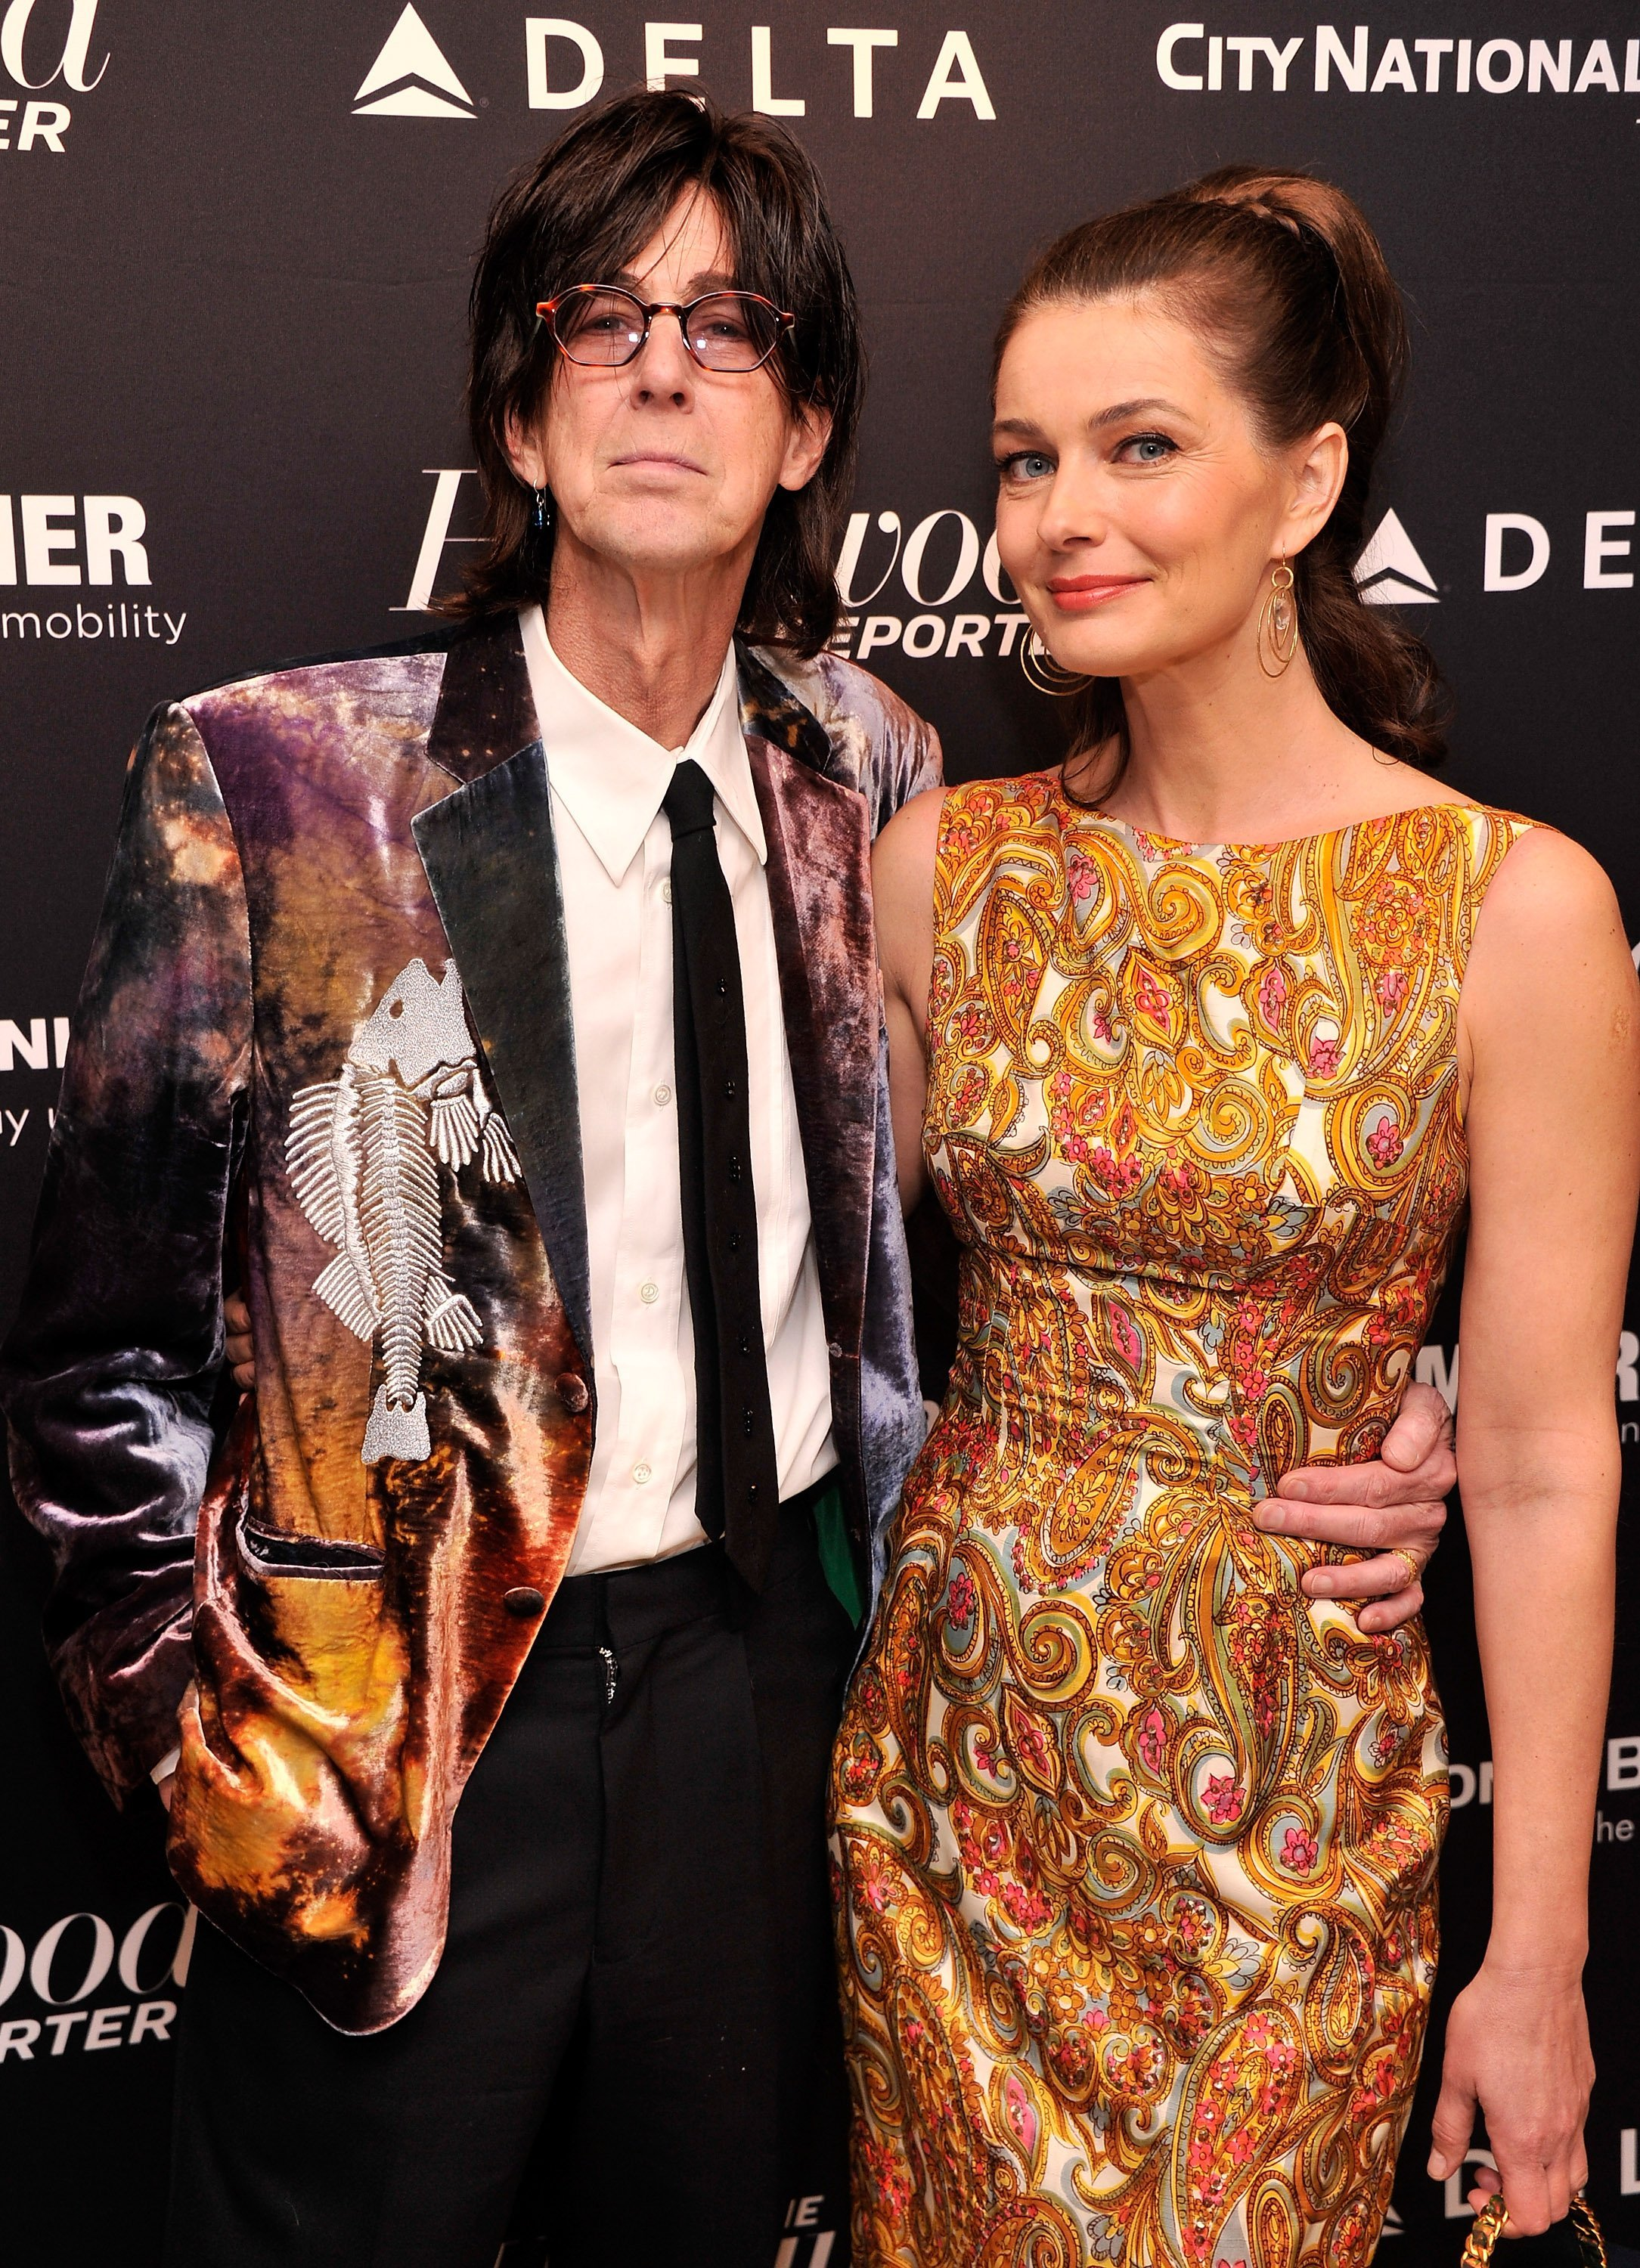 Ric Ocasek and Paulina Priskova attend a Most Powerful People In Media event in New York City on April 10, 2013 | Photo: Getty Images